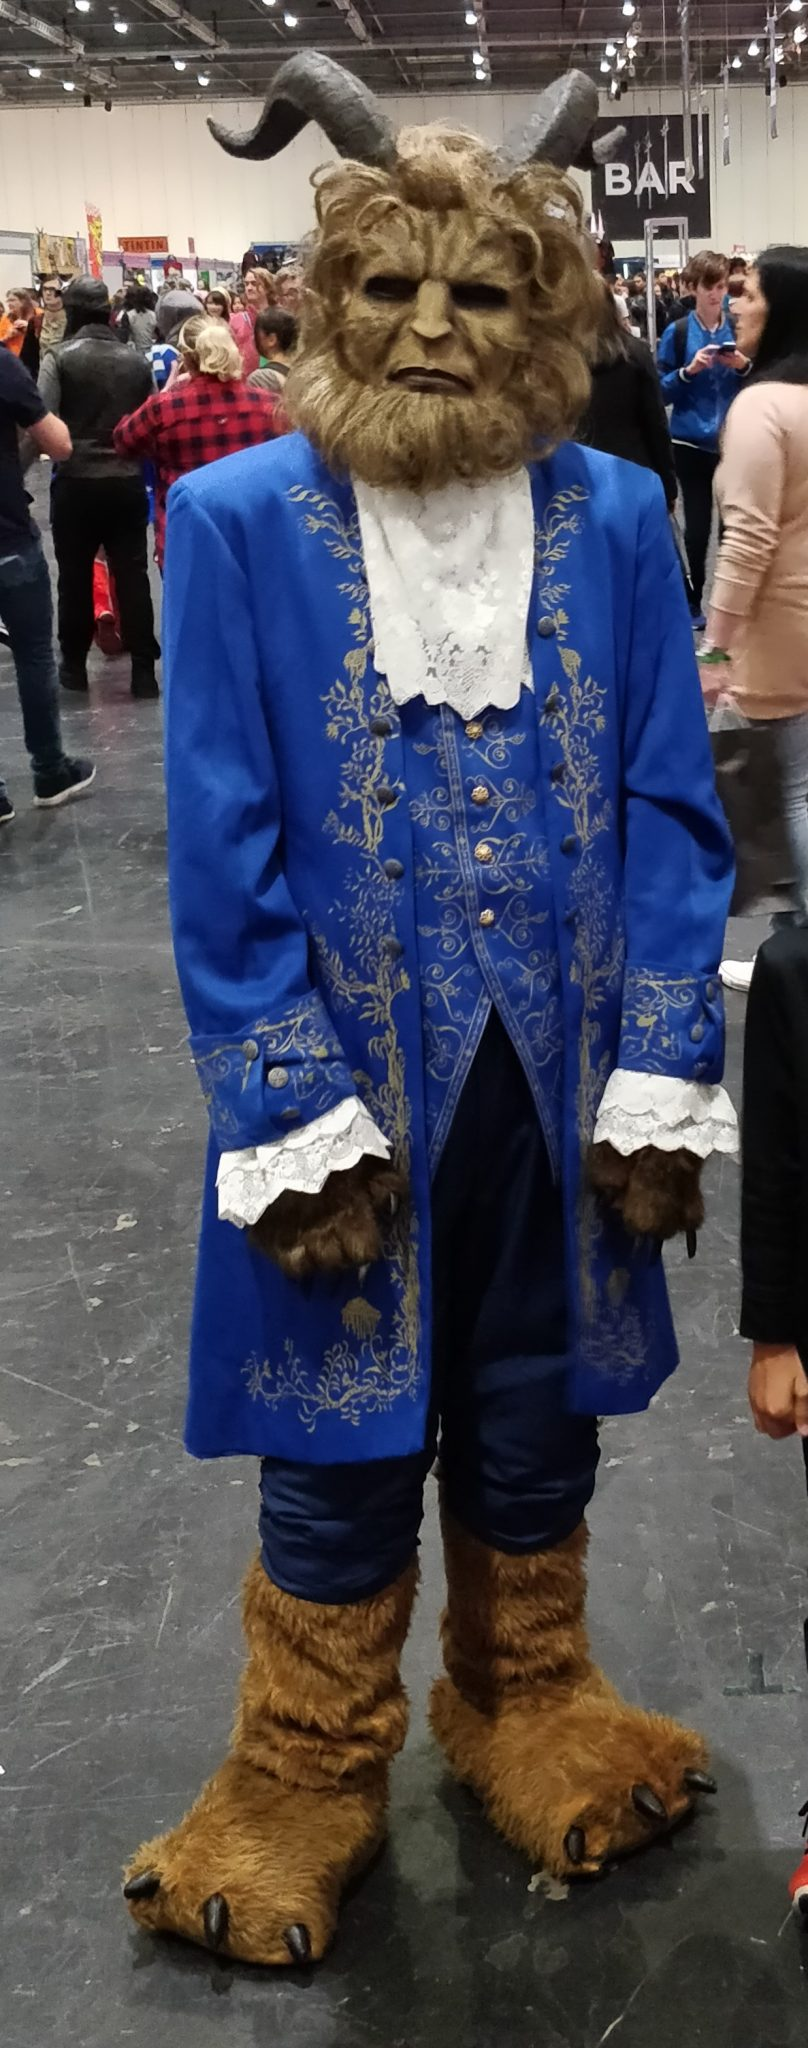 The Beast at the London MCM Comic Con